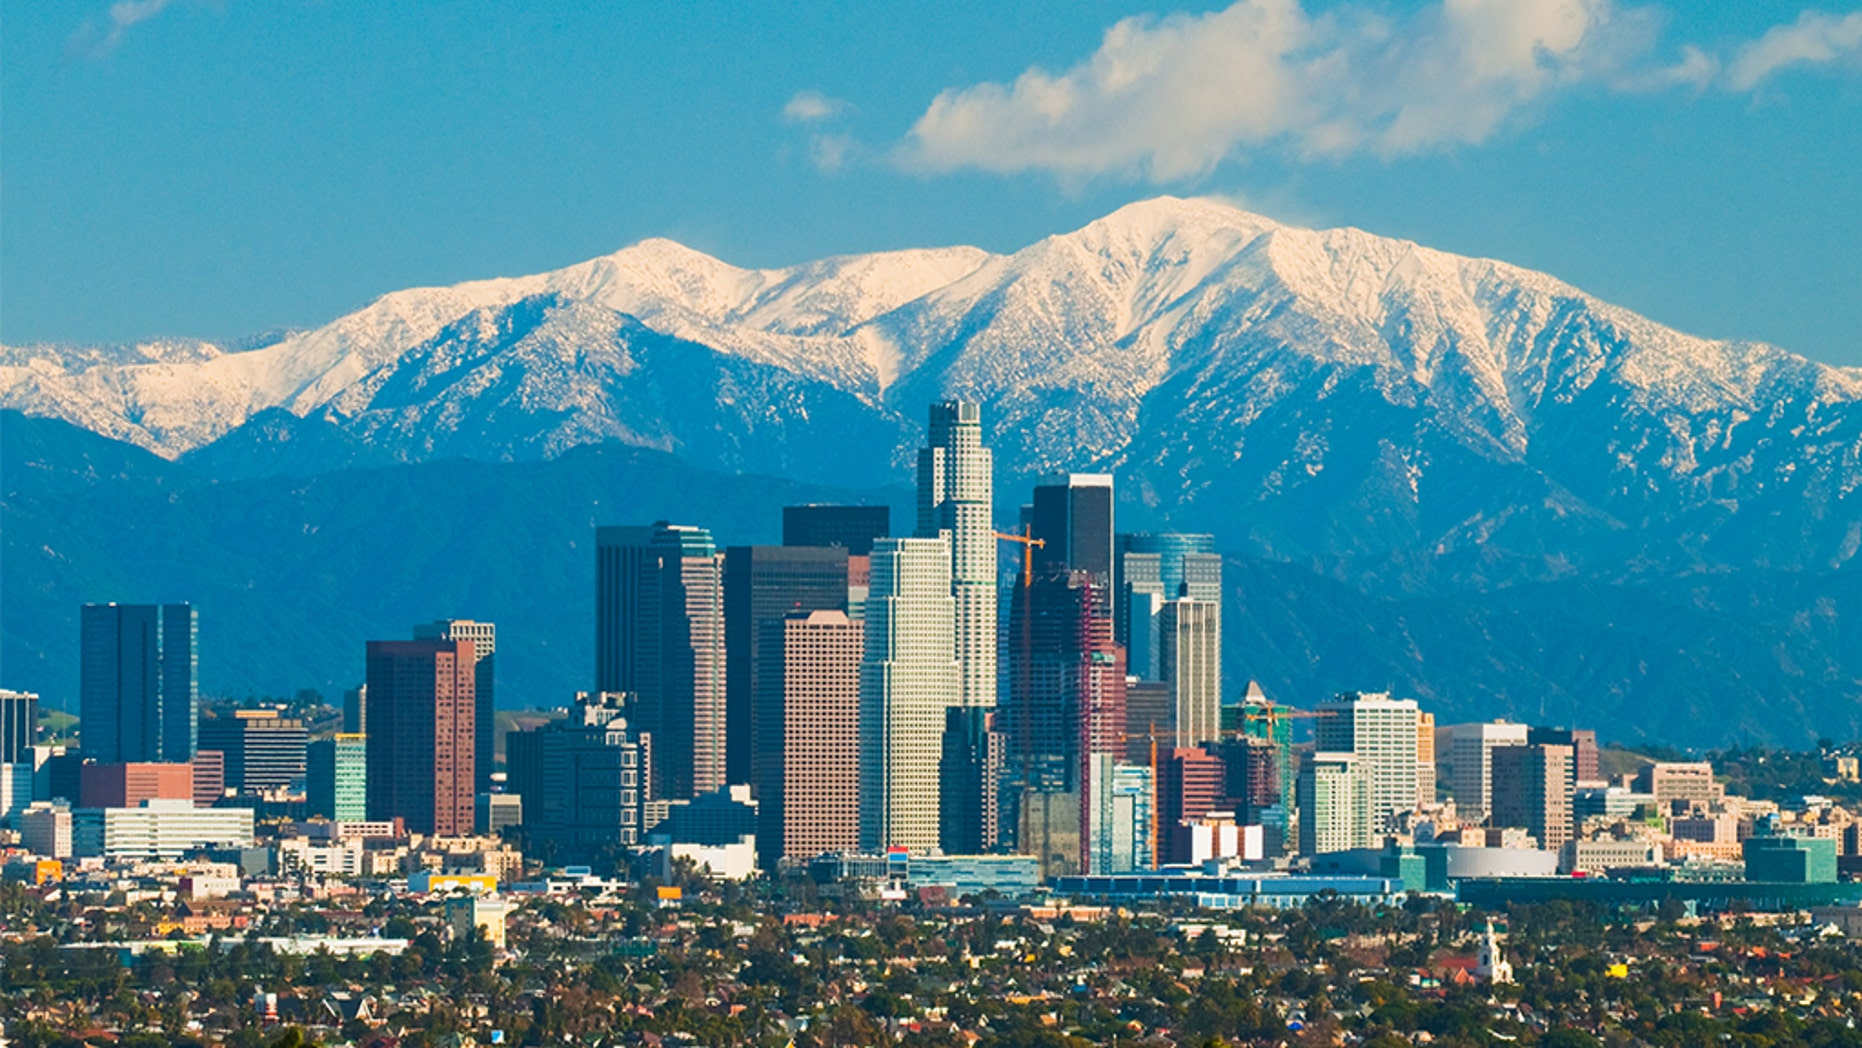 A runner in California slipped on ice on a mountain trail Sunday morning —and fell roughly 180feetto his death from a mountain peak in the San Gabriel Mountains, officials said. (iStock, File)